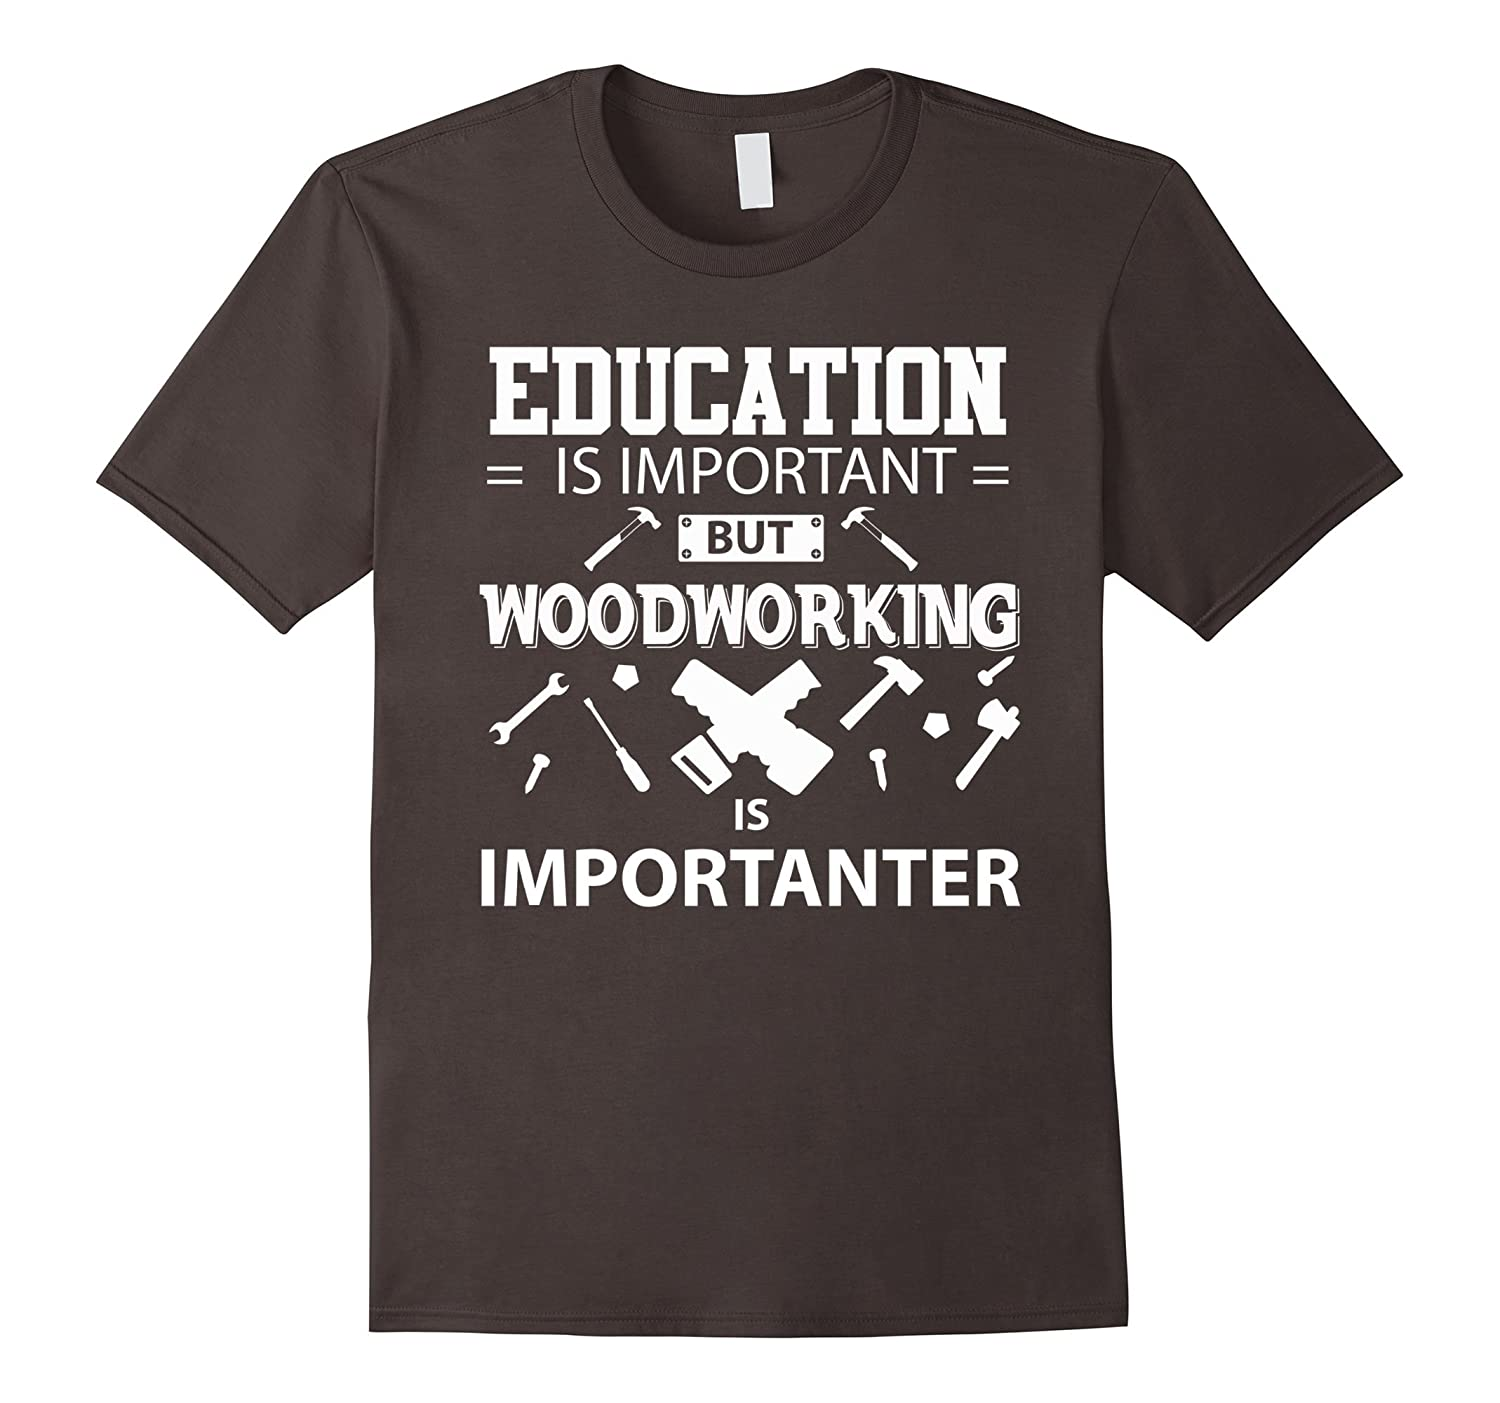 But Woodworking Is Importanter T SHirt-Teeae